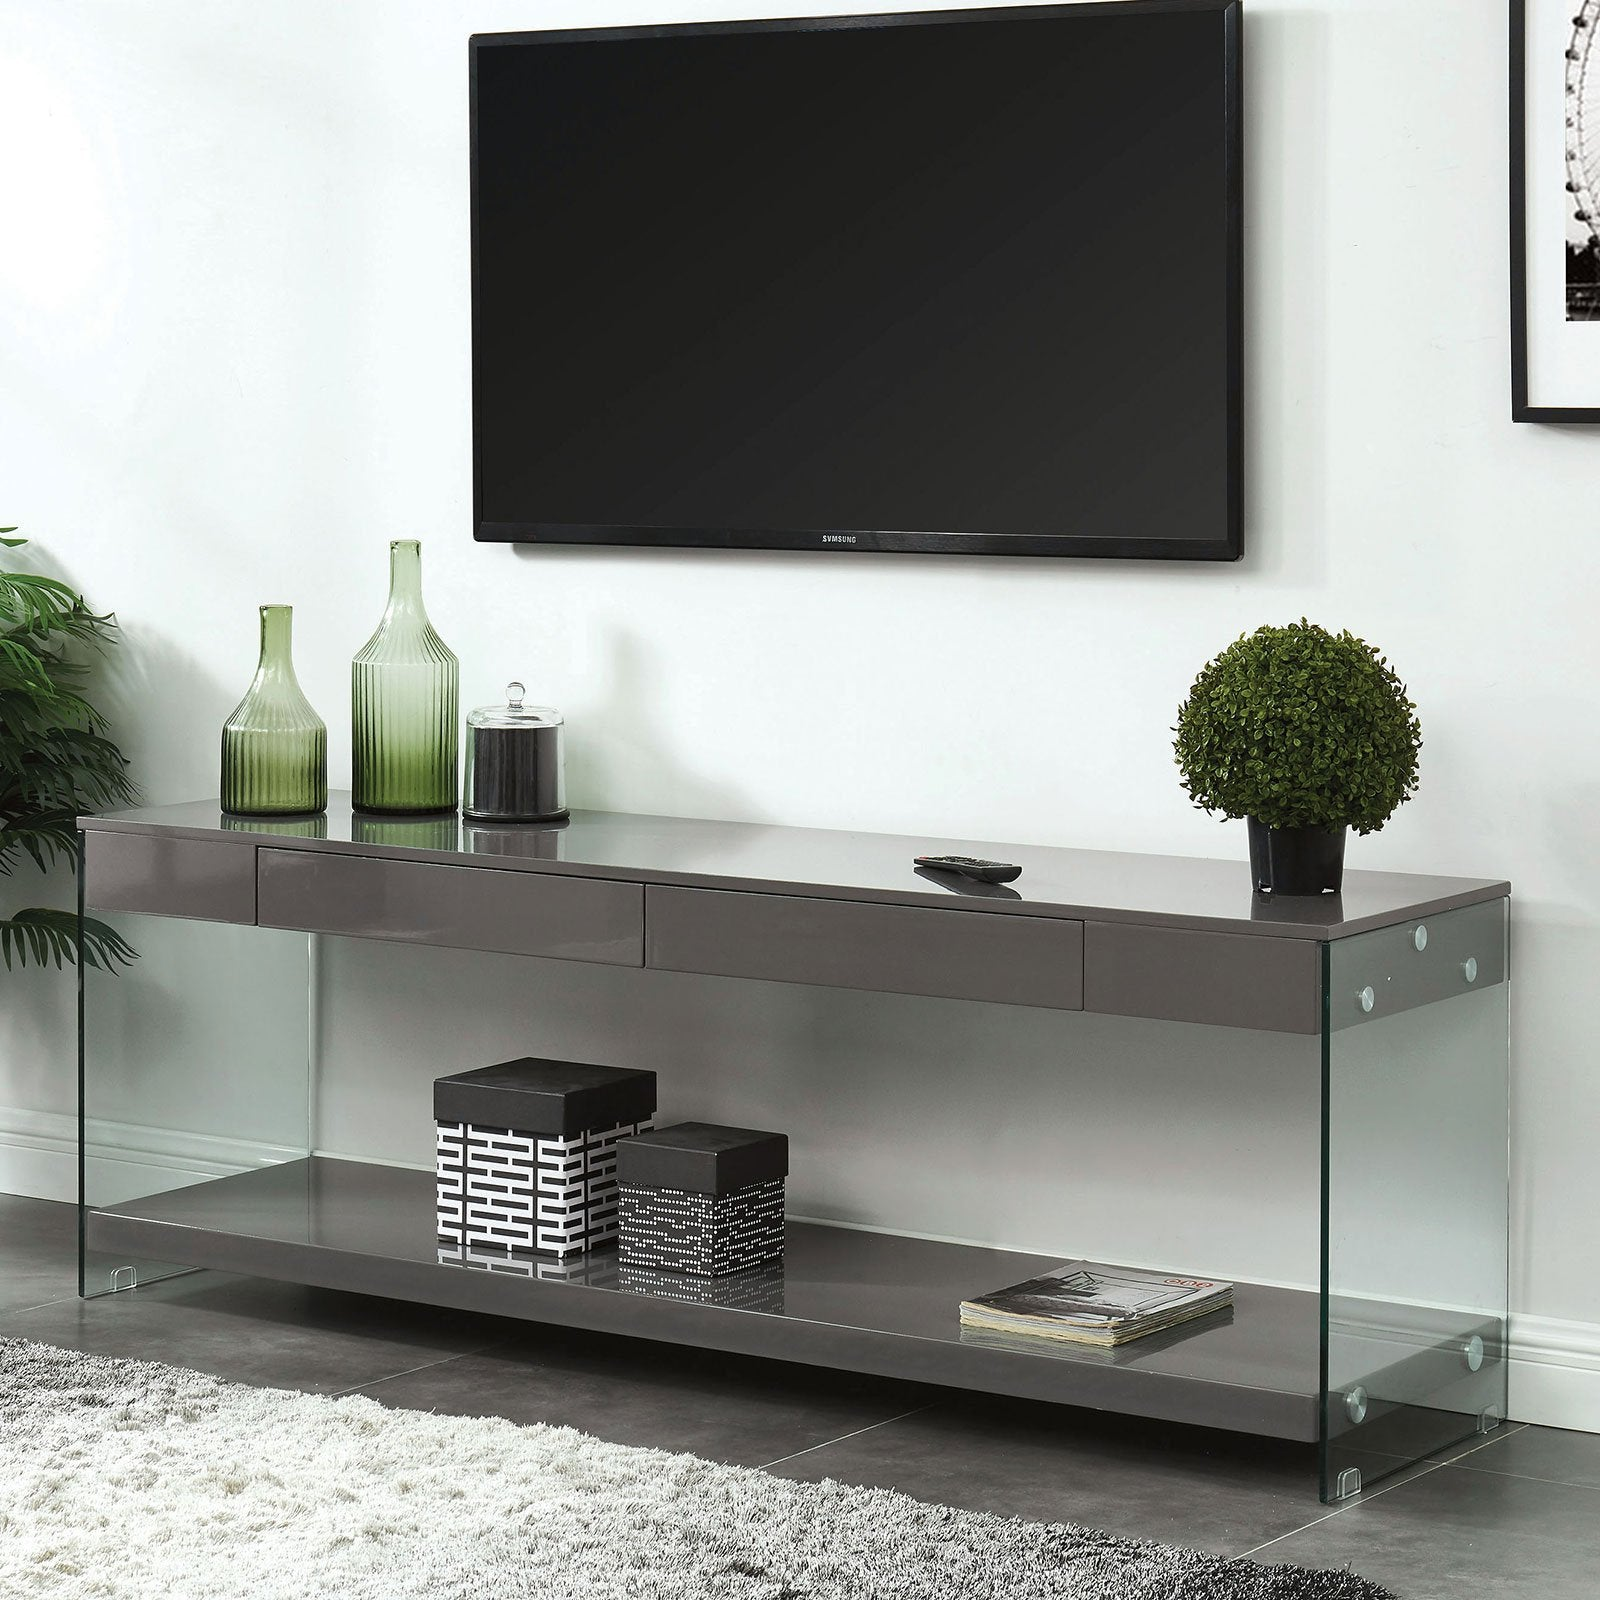 "Sabugal Contemporary 70"" TV Stand - InteriorDesignsToGo.com"